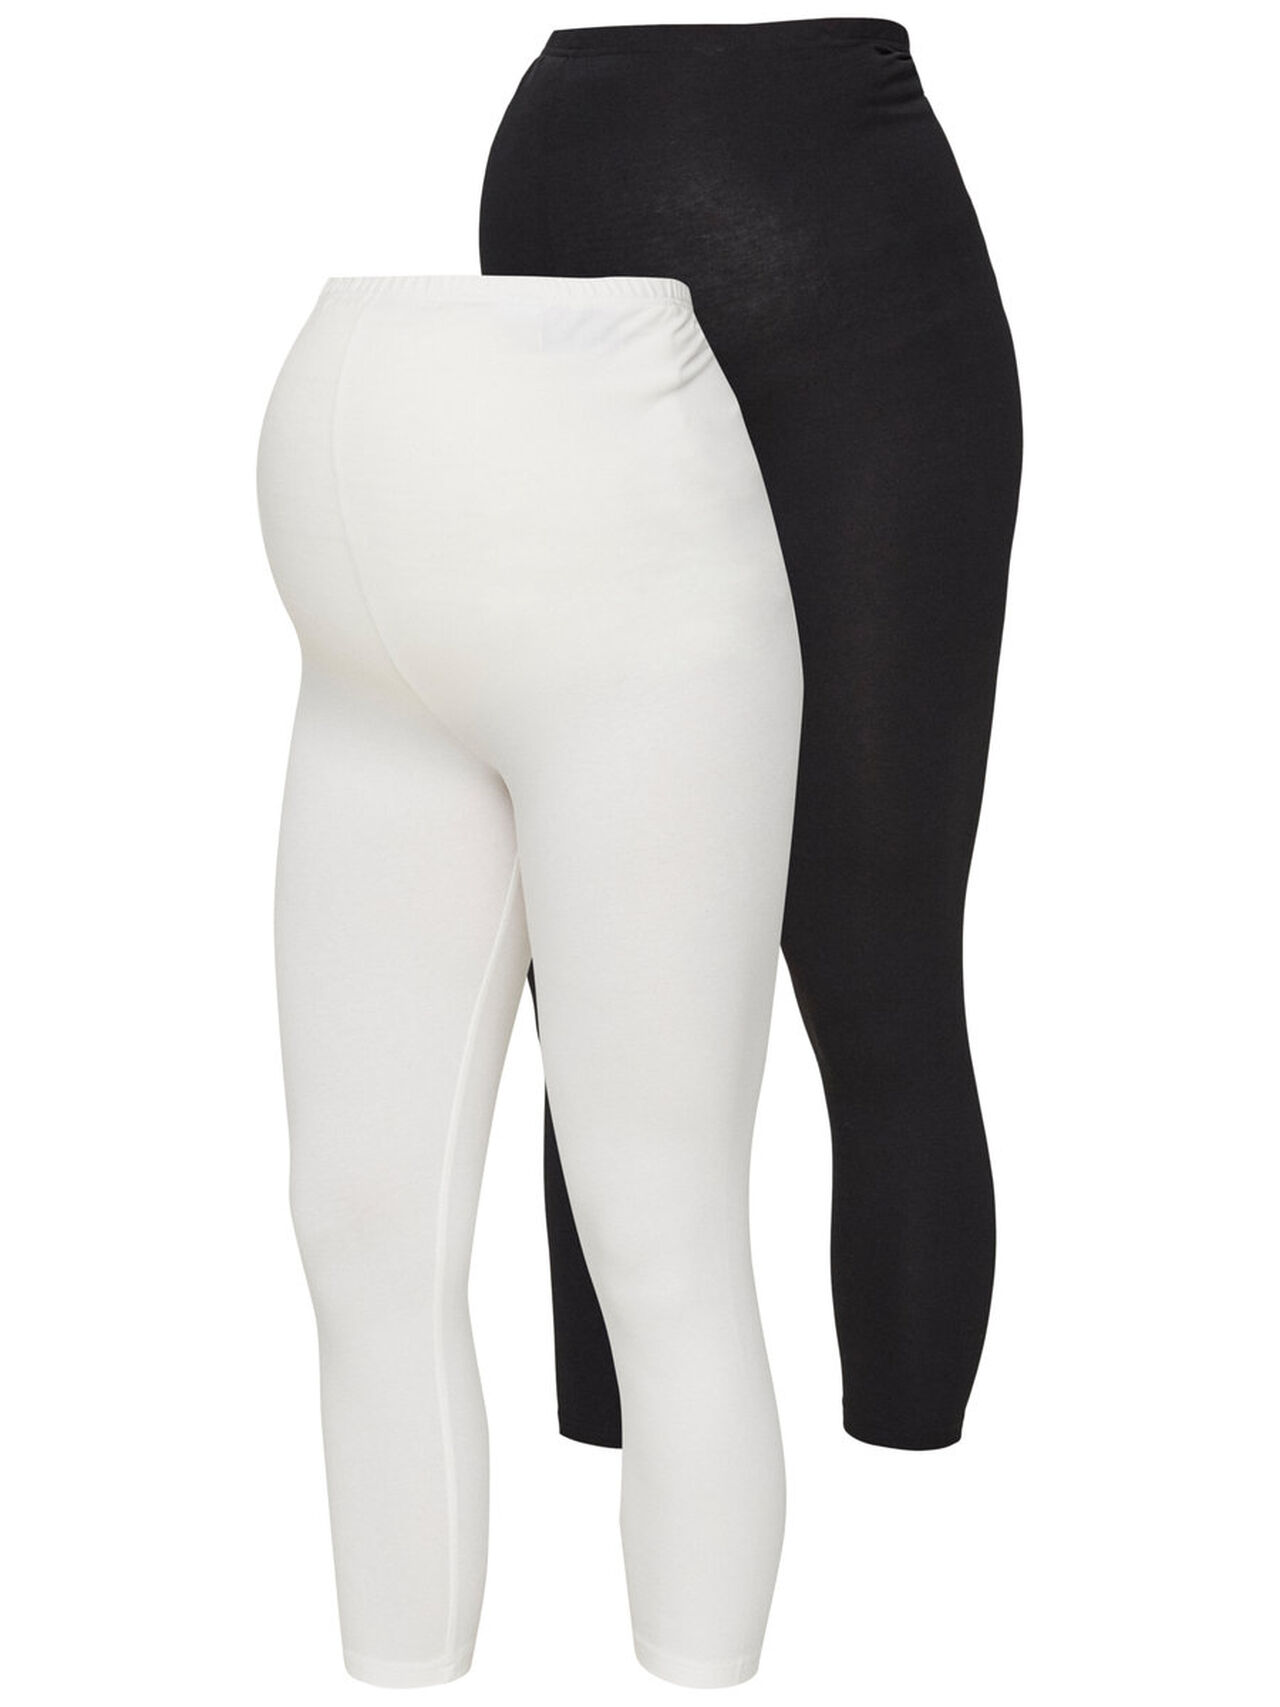 MAMA.LICIOUS 2-pack Jersey Maternity Leggings Women White